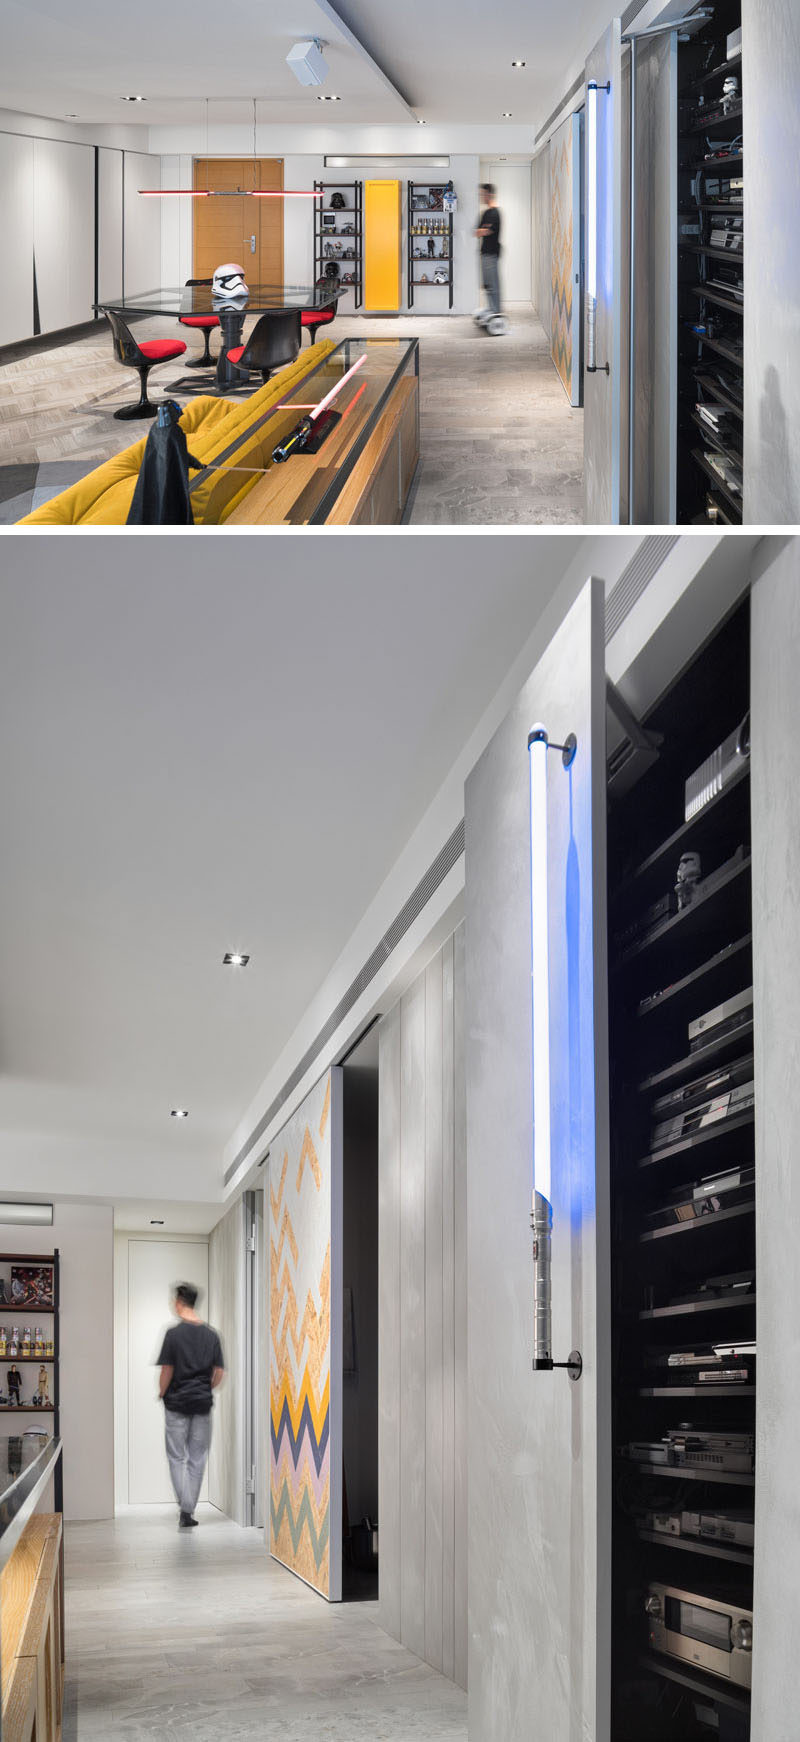 In this Star Wars inspired apartment, a lightsaber was used a handle to open the cabinet.